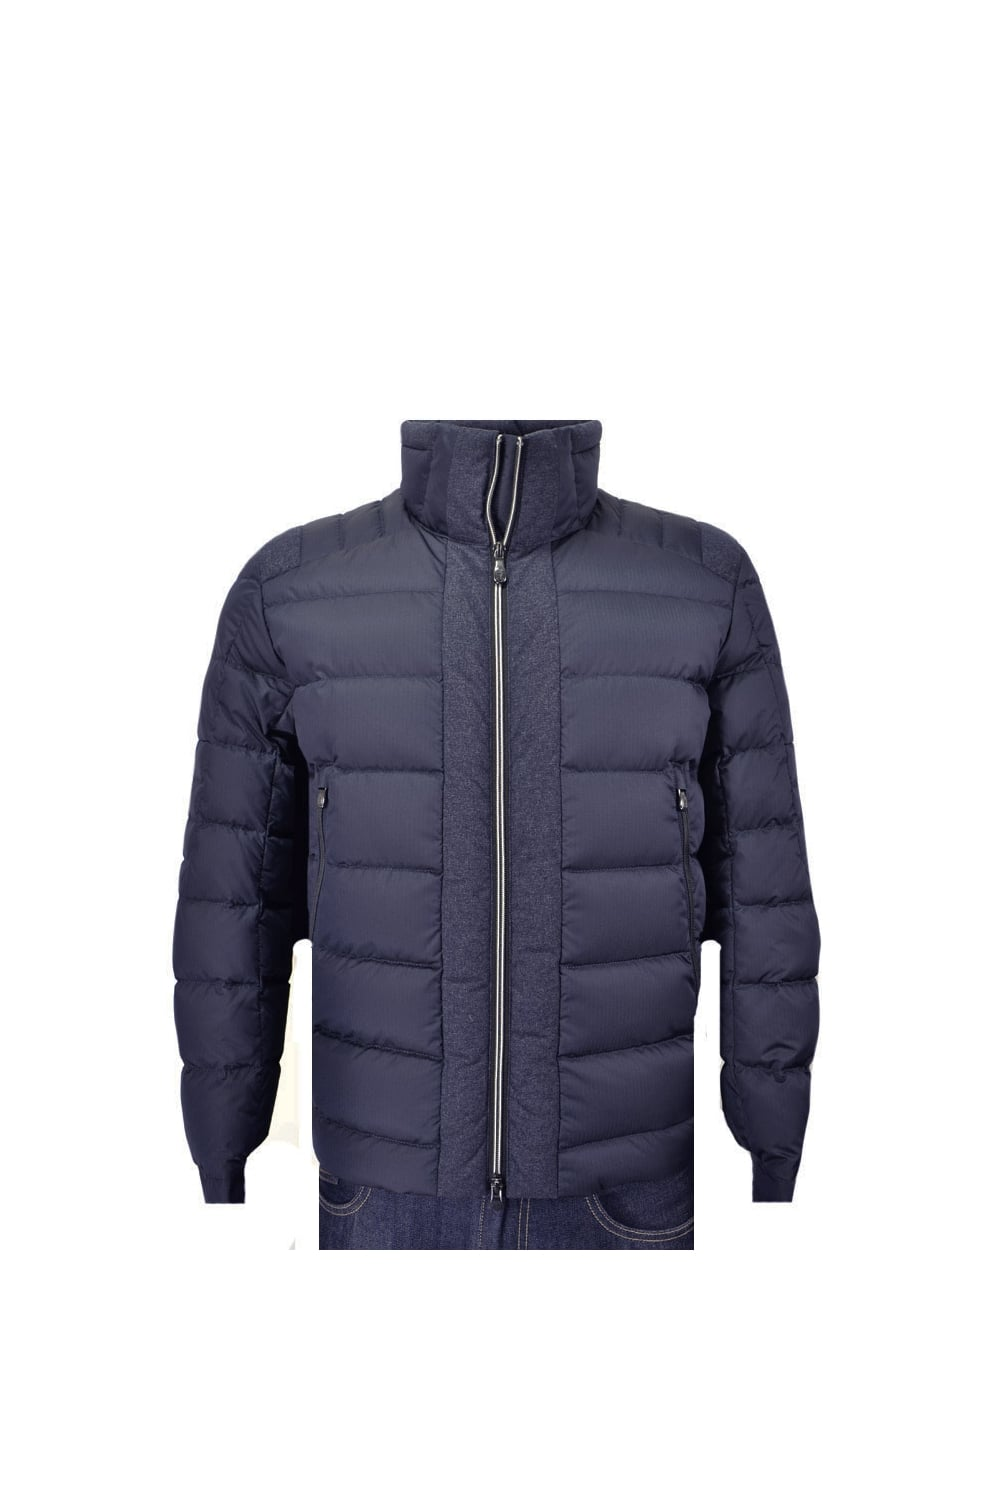 hugo boss green jonkins puffa jacket clothing from. Black Bedroom Furniture Sets. Home Design Ideas